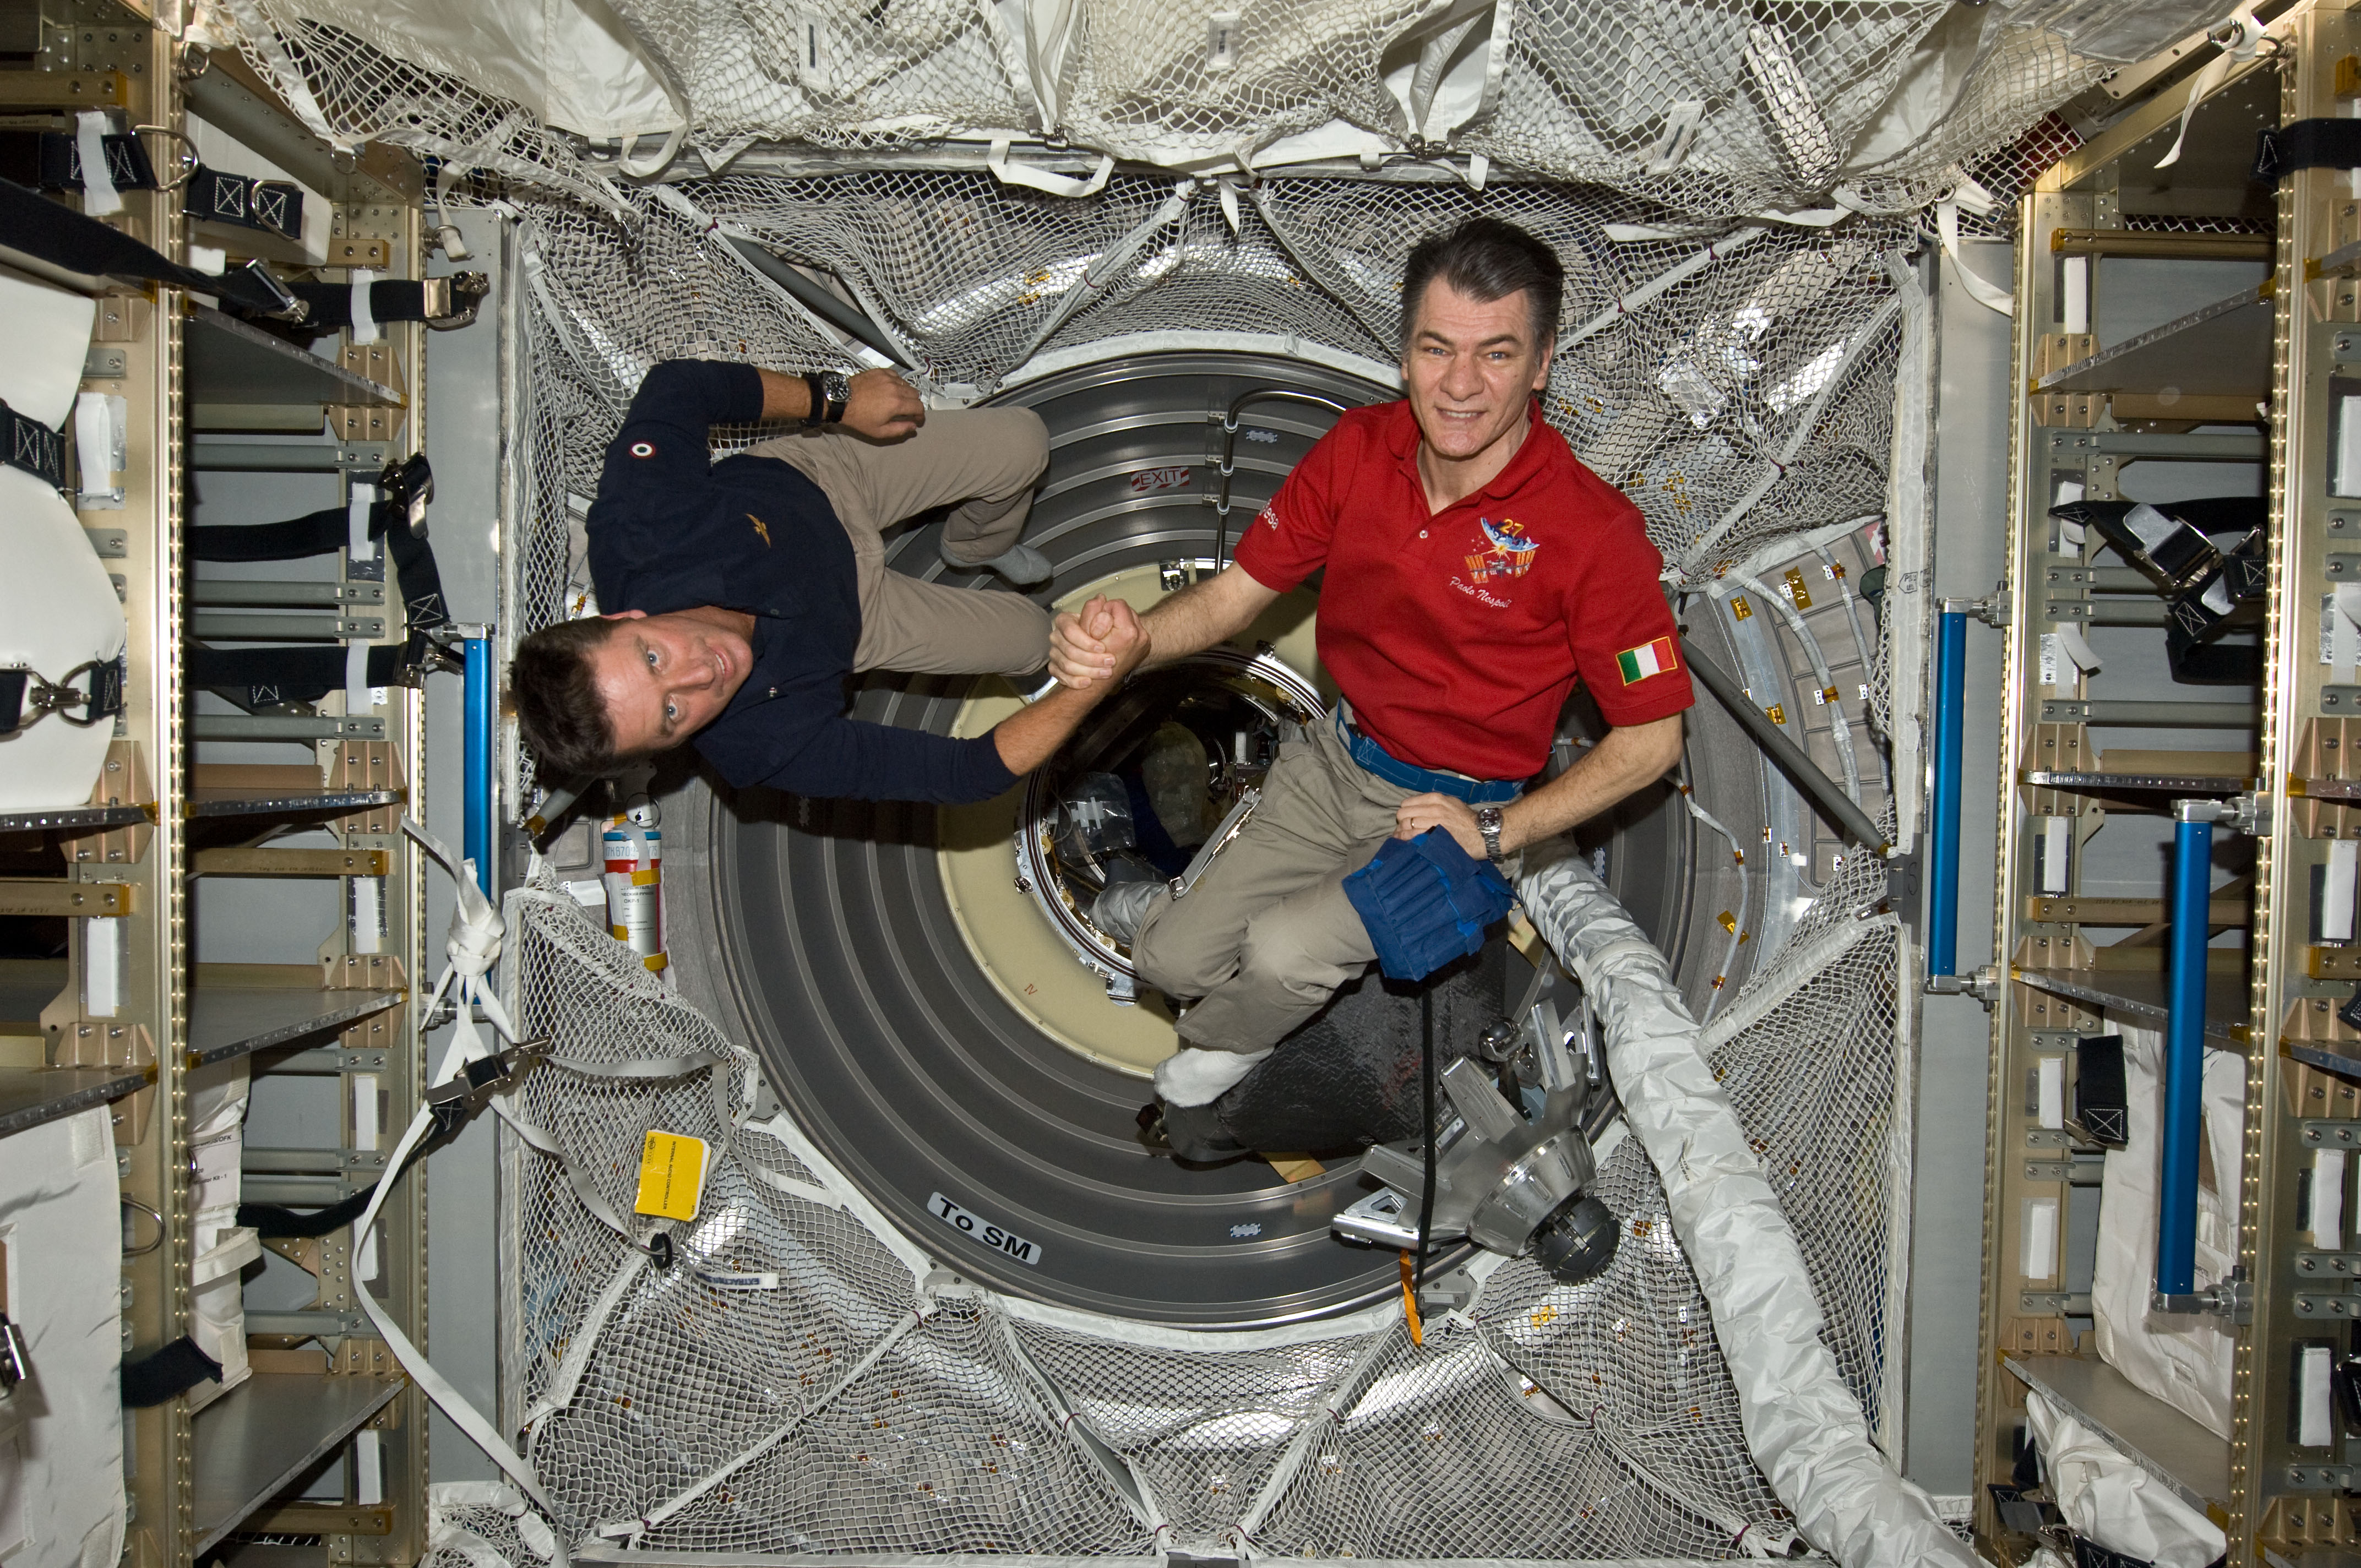 ISS-27 STS-134 Paolo Nespoli and Roberto Vittori in the ATV